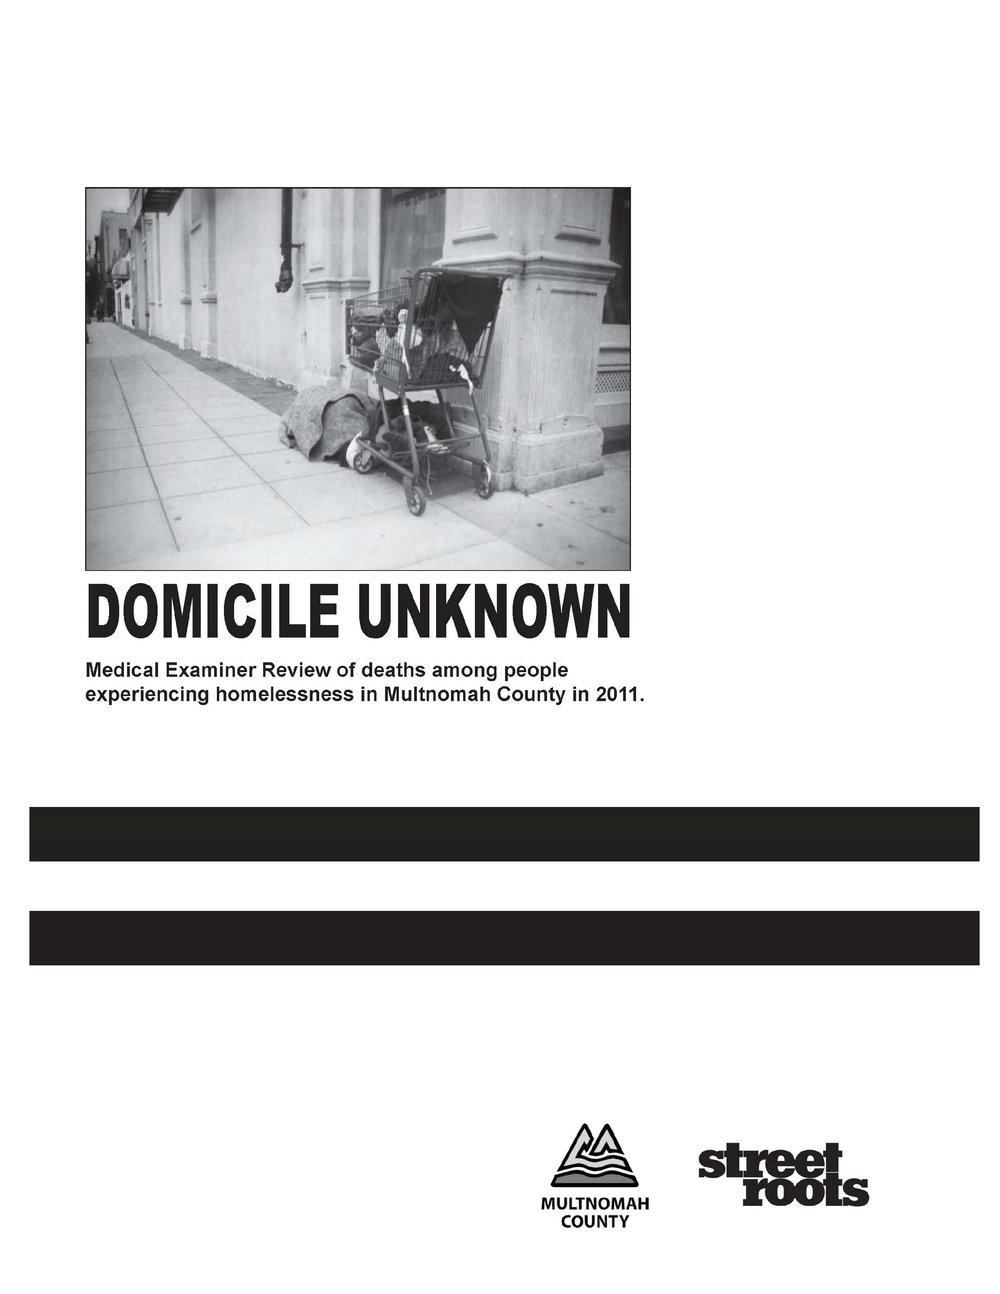 2011 Domicile Unknown Report